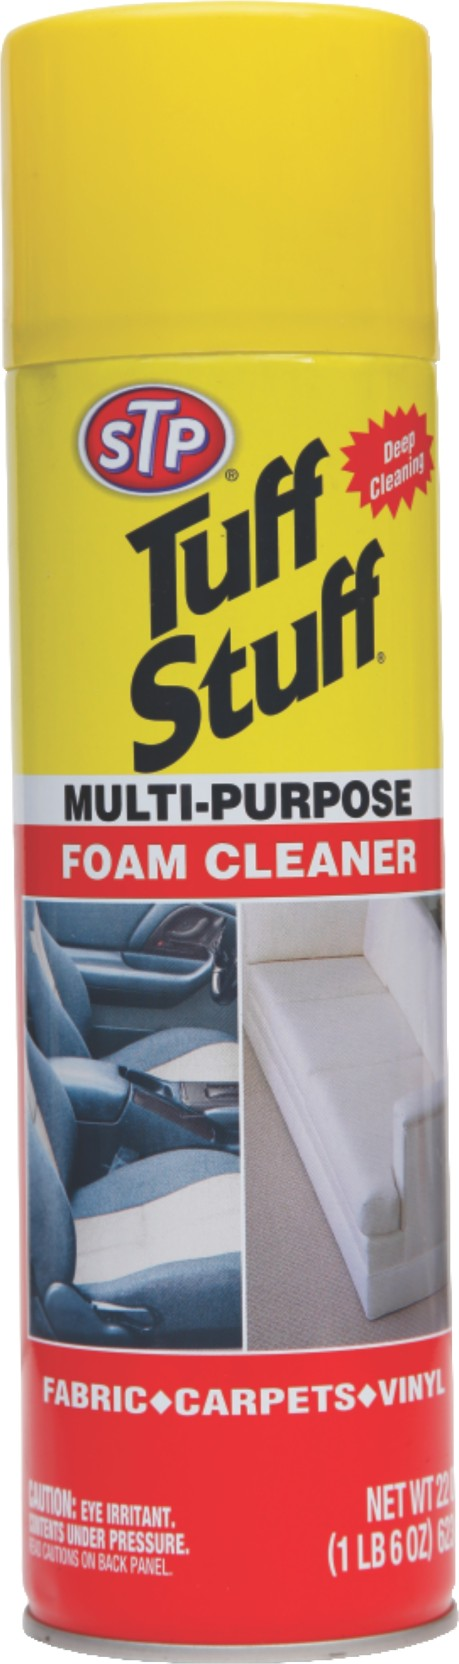 stp tuff stuff 78560us vehicle interior cleaner price in india buy stp tuff stuff 78560us. Black Bedroom Furniture Sets. Home Design Ideas